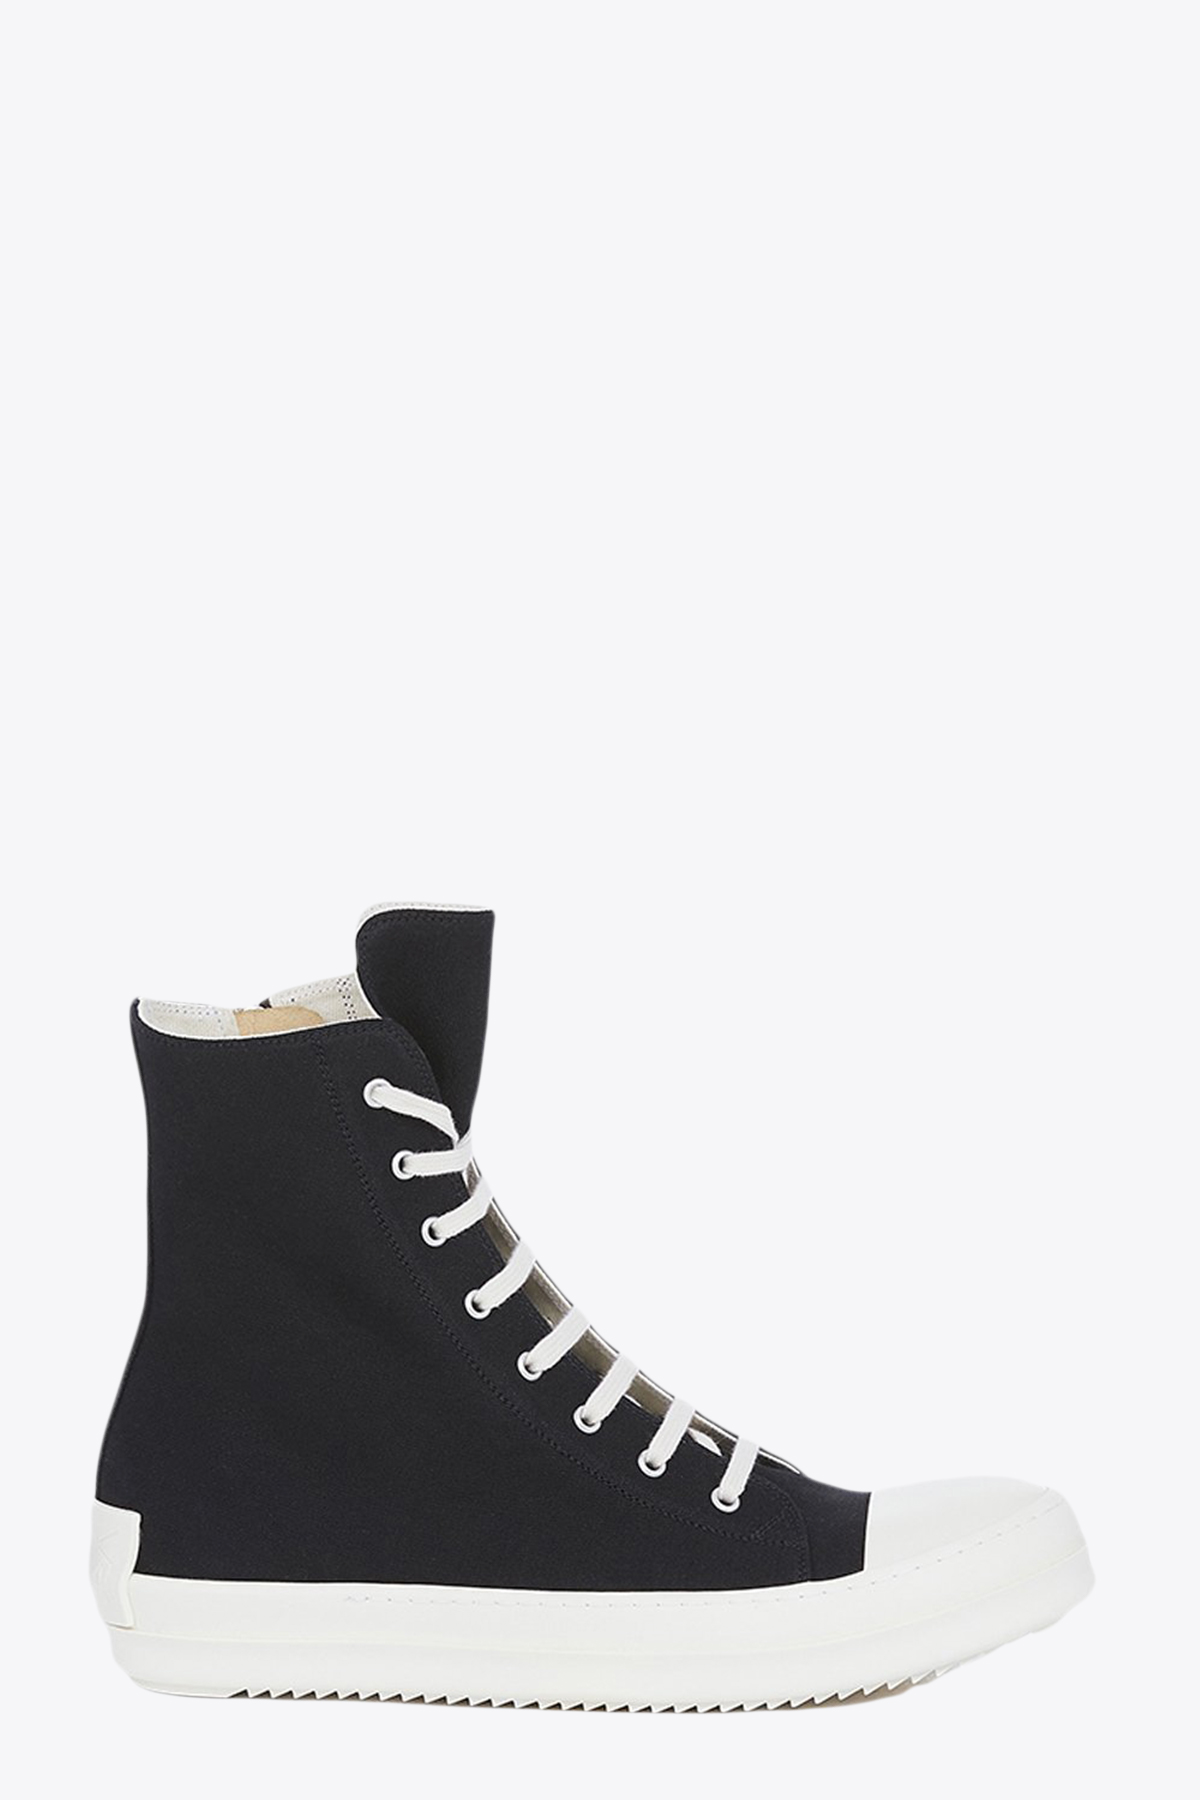 LACE UP HIGH TOP SNEAKERS RICK OWENS-DRKSHDW | 10000039 | DS21S2800 TNAPH2 SNEAKERS911